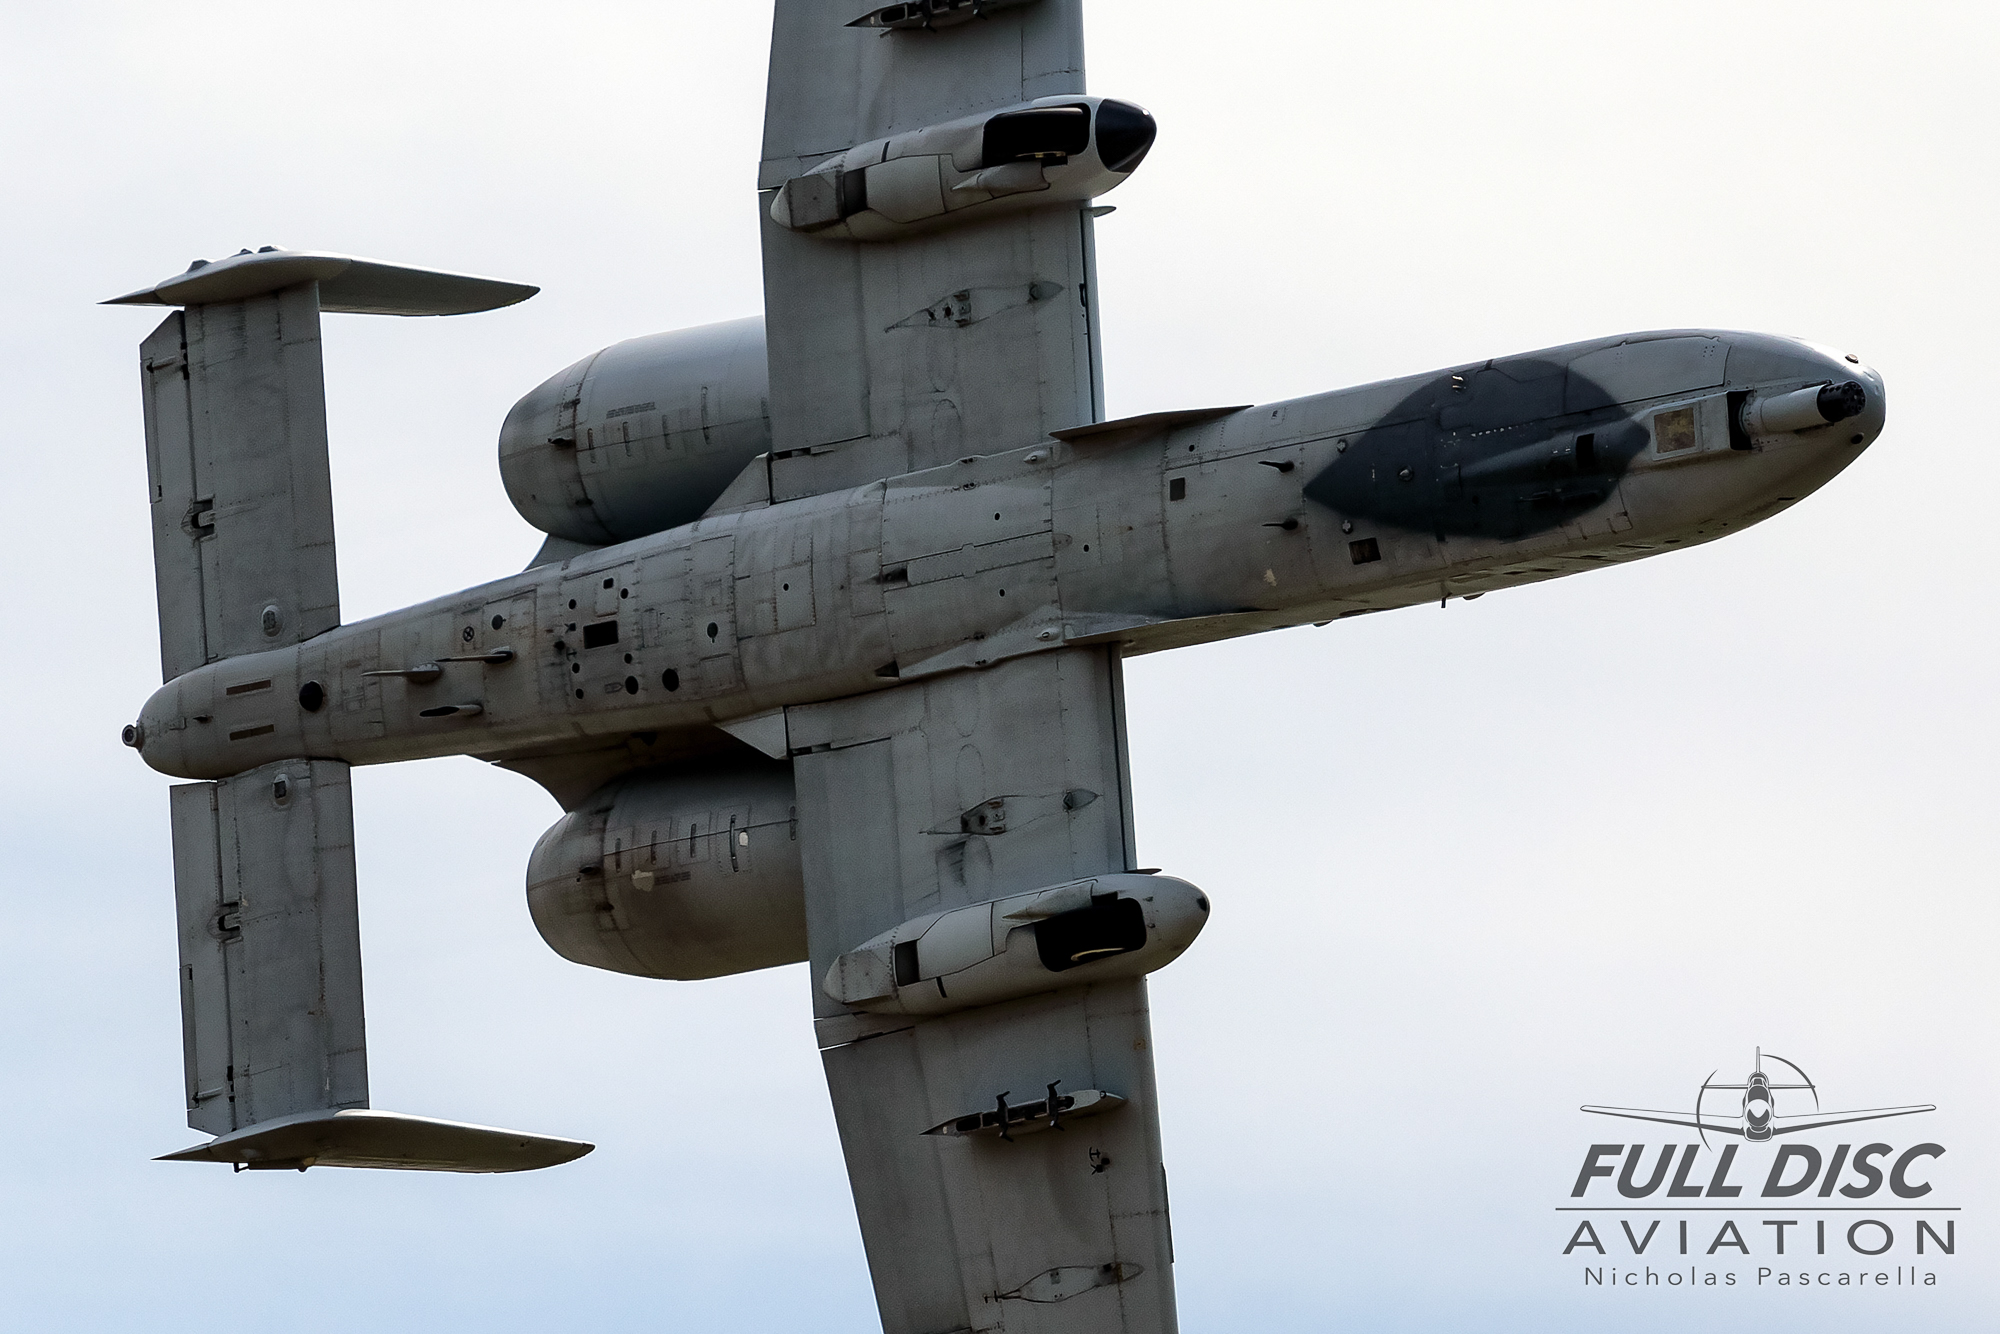 a10_closeup_belly__aviation__nickpascarella_nicholaspascarella_fulldiscaviation_leasewebmanassasairshow.jpg